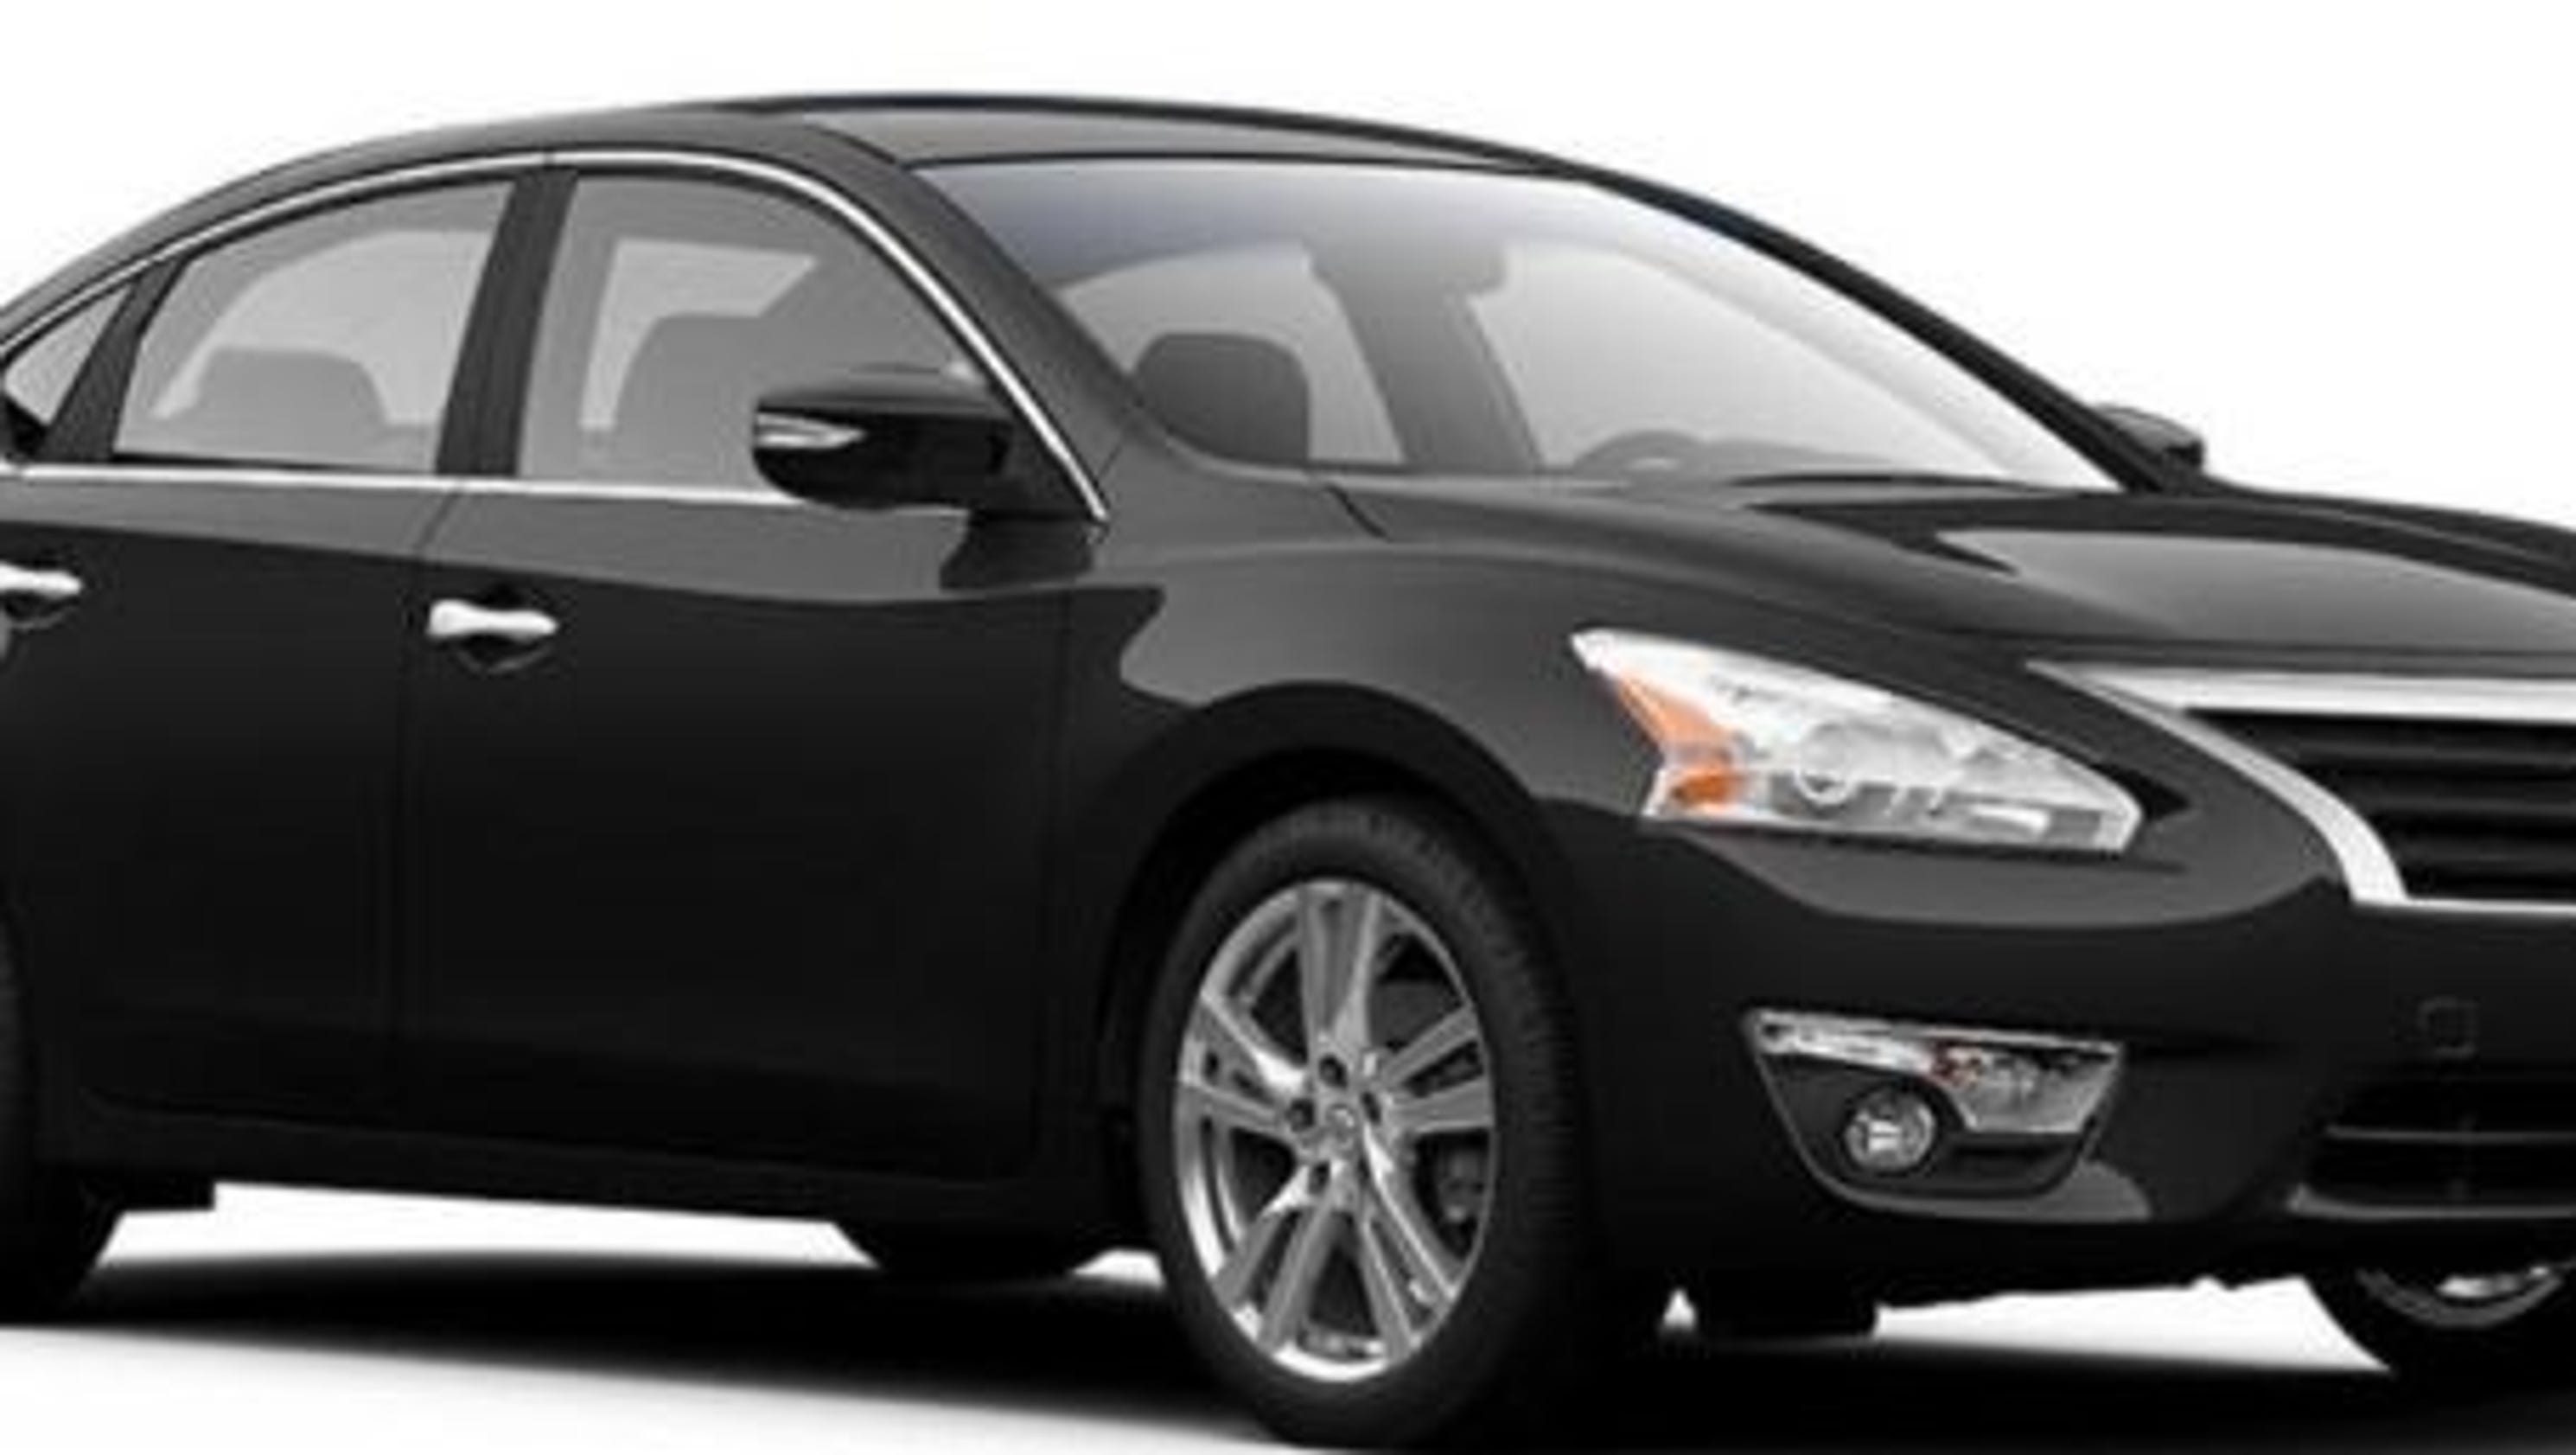 in auto fort fl for img used com nissan sale less than dollars cars myers sentra